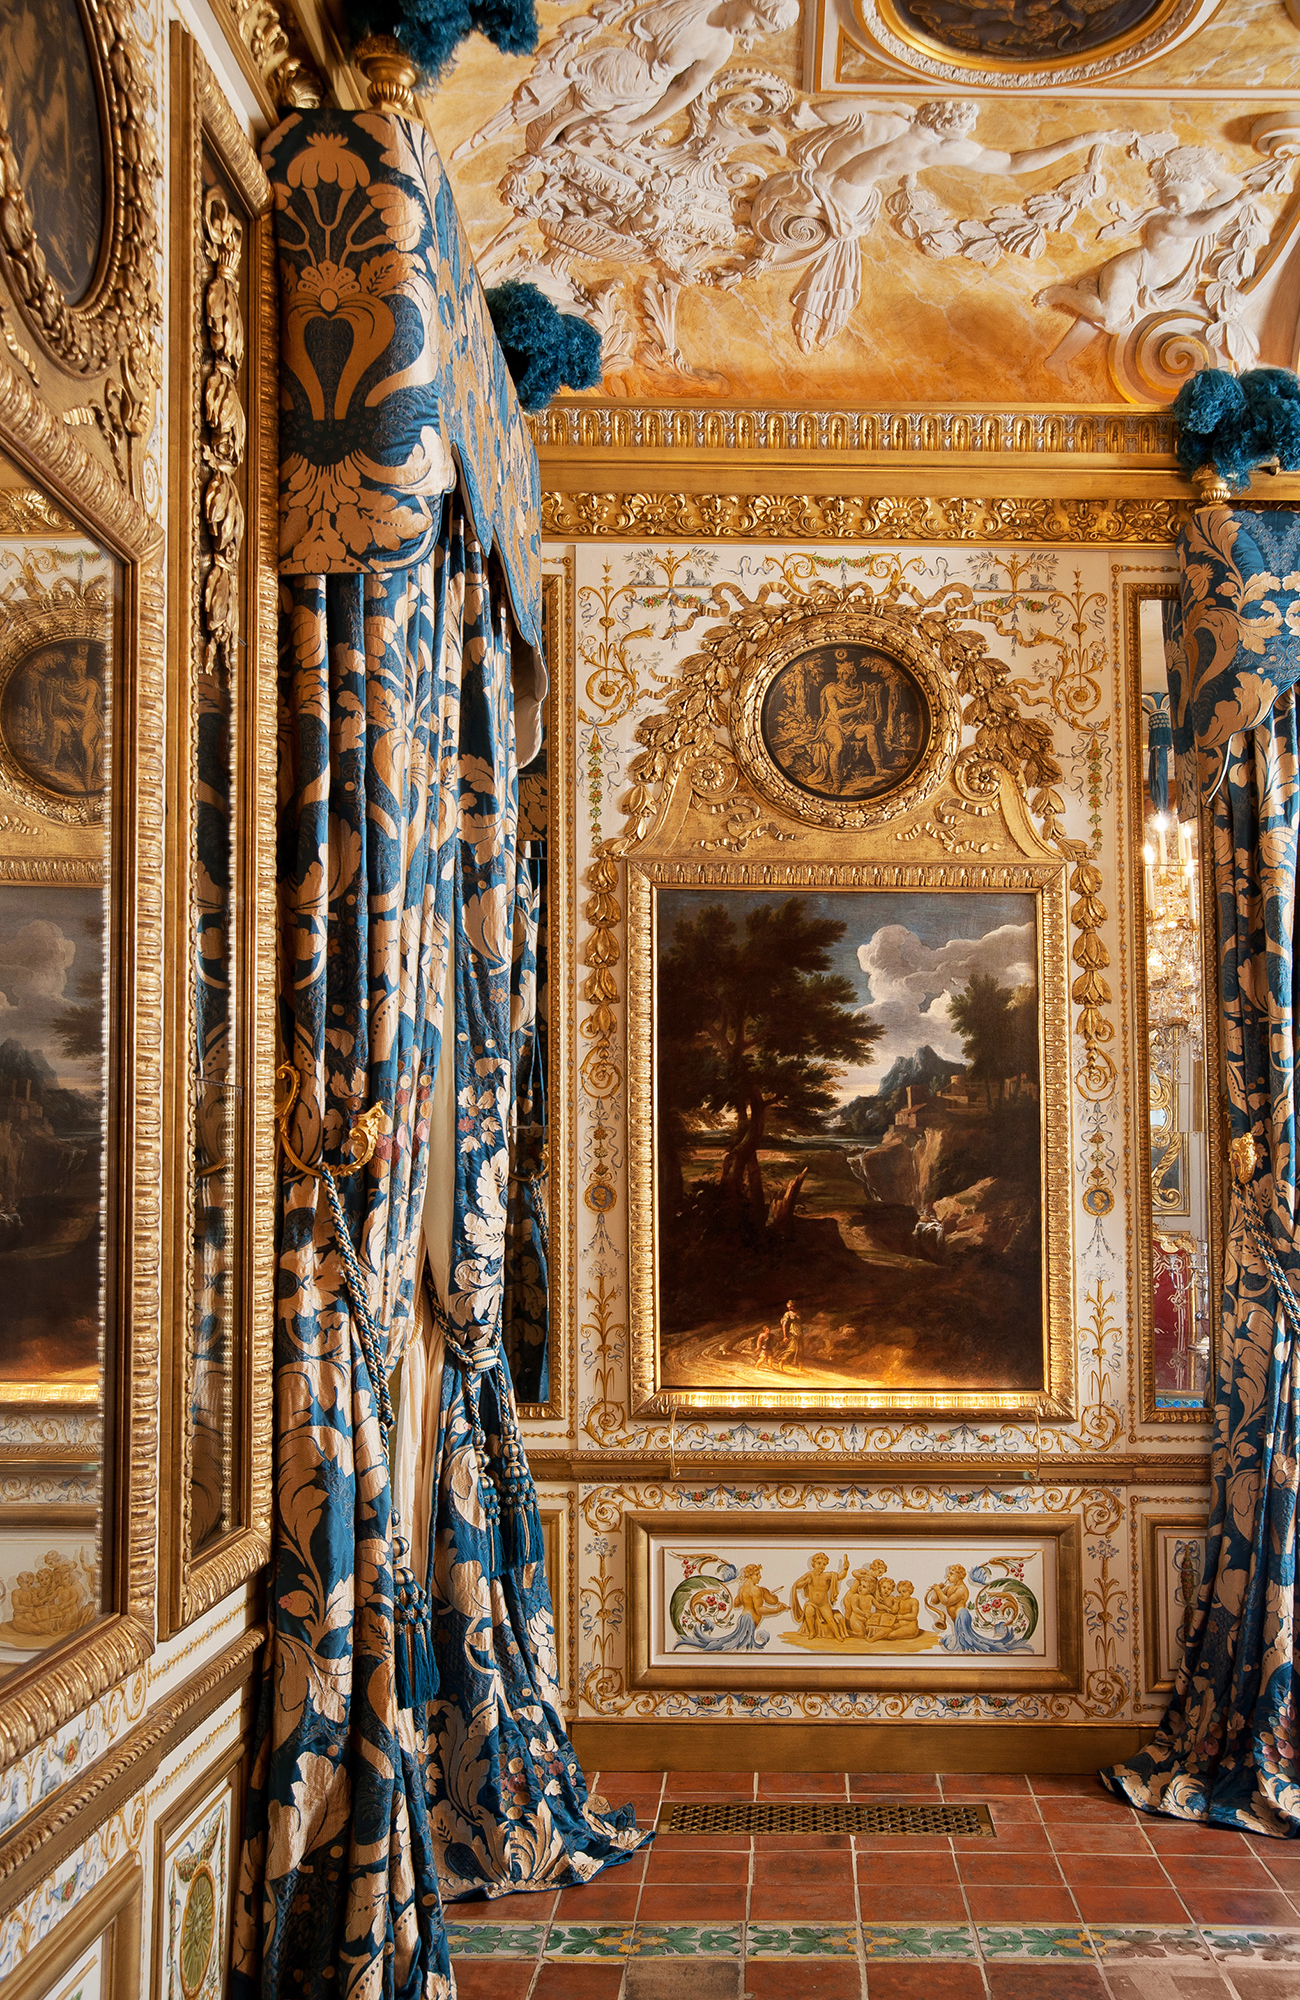 Luxury decor, paneling, cornices, ceiling, painted gilded wood, private interior, France